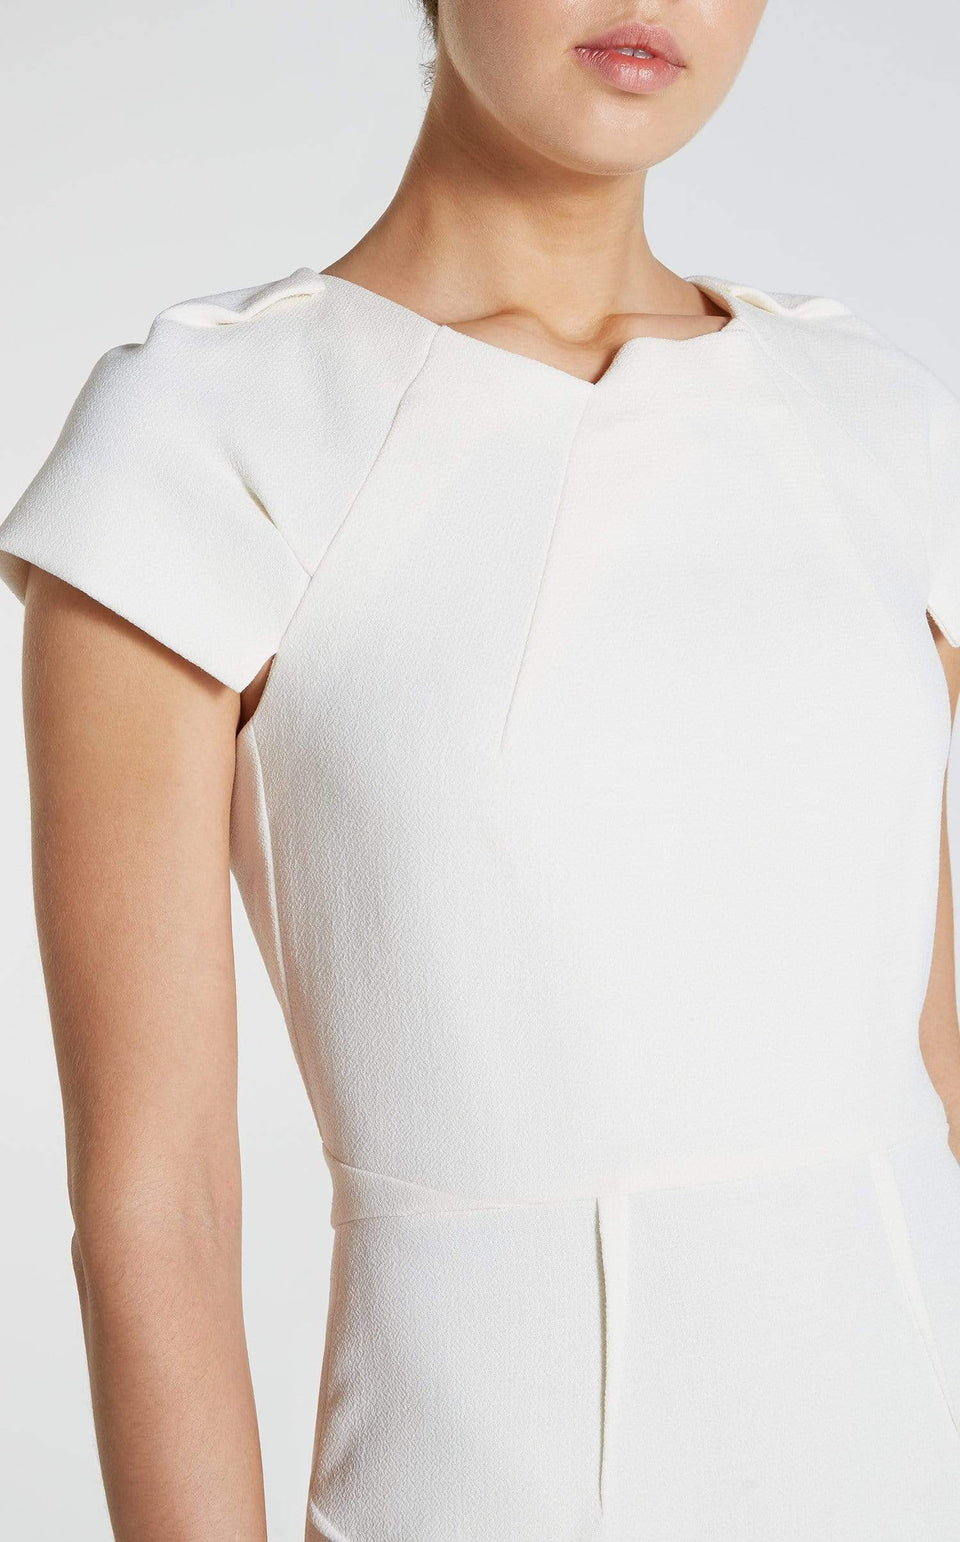 Scirocco Dress In White from Roland Mouret